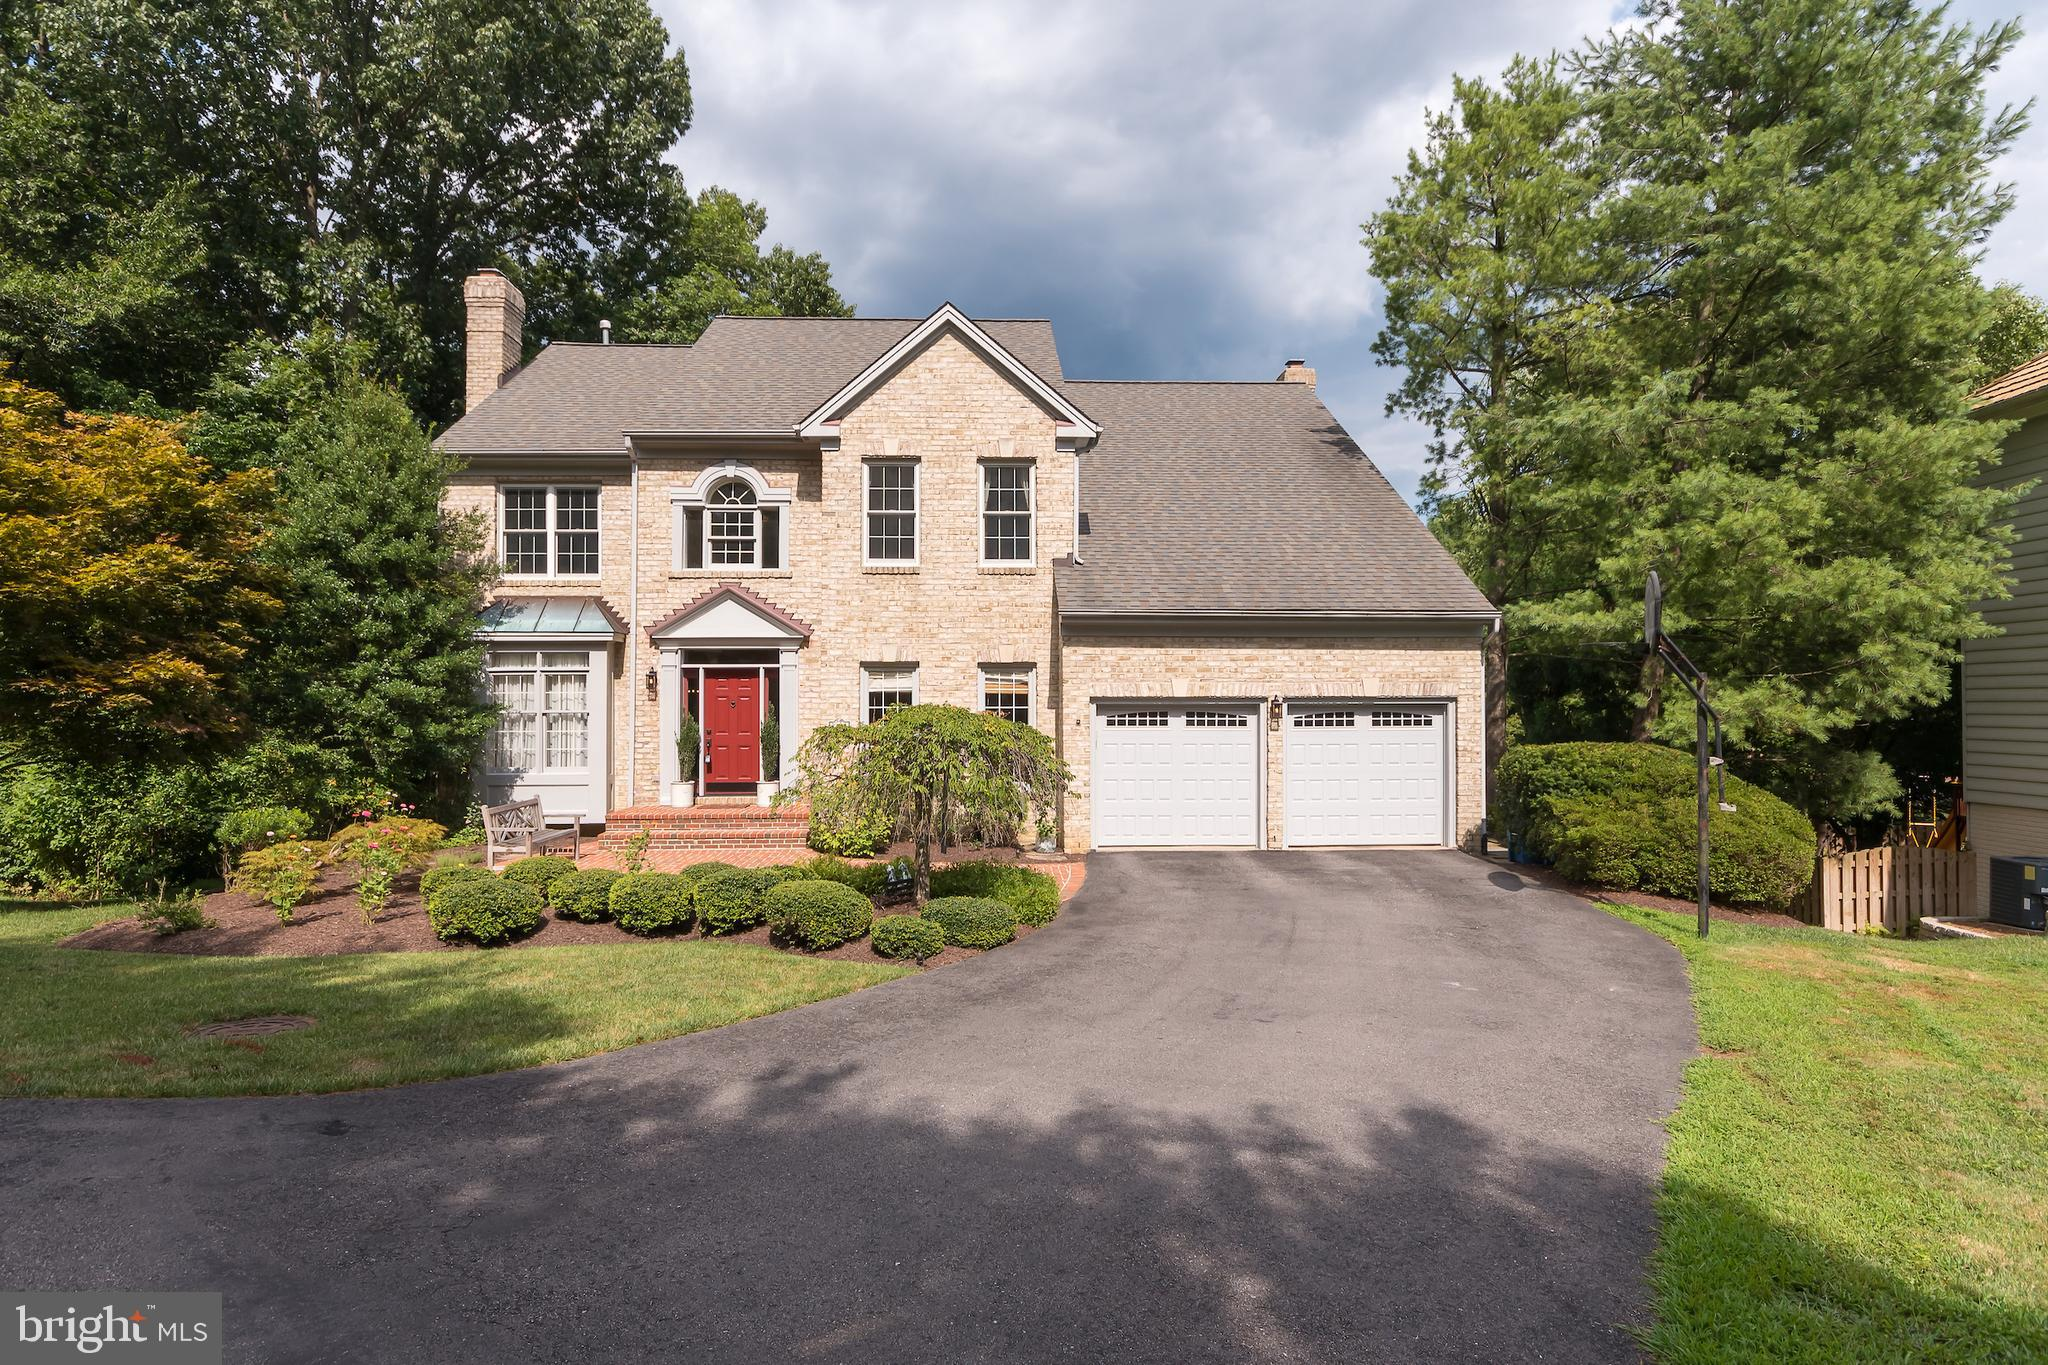 Stunning three-level brick front home with over 4,600 square feet in picturesque Springfield Glen! Featuring an elegant two story foyer, formal living room & dining room -- this is the perfect space to welcome and entertain your guests! The spacious kitchen boasts a center island, breakfast nook, ample cabinet & counter space, and plenty of pantry space. Cozy up by the fire in the light-filled den with beautiful french doors opening to a new top-of-the-line Trex deck. Rounding out the main level is a functional laundry room, an updated powder room, and a stately study with french doors for privacy while working from home! Ascend the curved staircase to the upper level with three spacious bedrooms, one bathroom with dual vanities, stall shower, and separate tub. Perhaps the most stunning feature on the upper level is the luxurious master suite, which features an oversized master bedroom with a trey ceiling, walk-in closet, and spa-like master bathroom. The finished, walk-out basement with wet bar, full bathroom, and several storage rooms is totally customizable to fit your needs -- media room, family room, or in-home gym -- the options are endless! Enjoy the outdoors on the patio or dine al fresco on the beautiful deck overlooking trees, lush landscaping, and Cross County Trail. Parking is a breeze with a two car garage and large, private driveway. Convenient to major roadways, Metro, VRE, public transportation, shopping, dining, & recreation options and located in sought after school district!